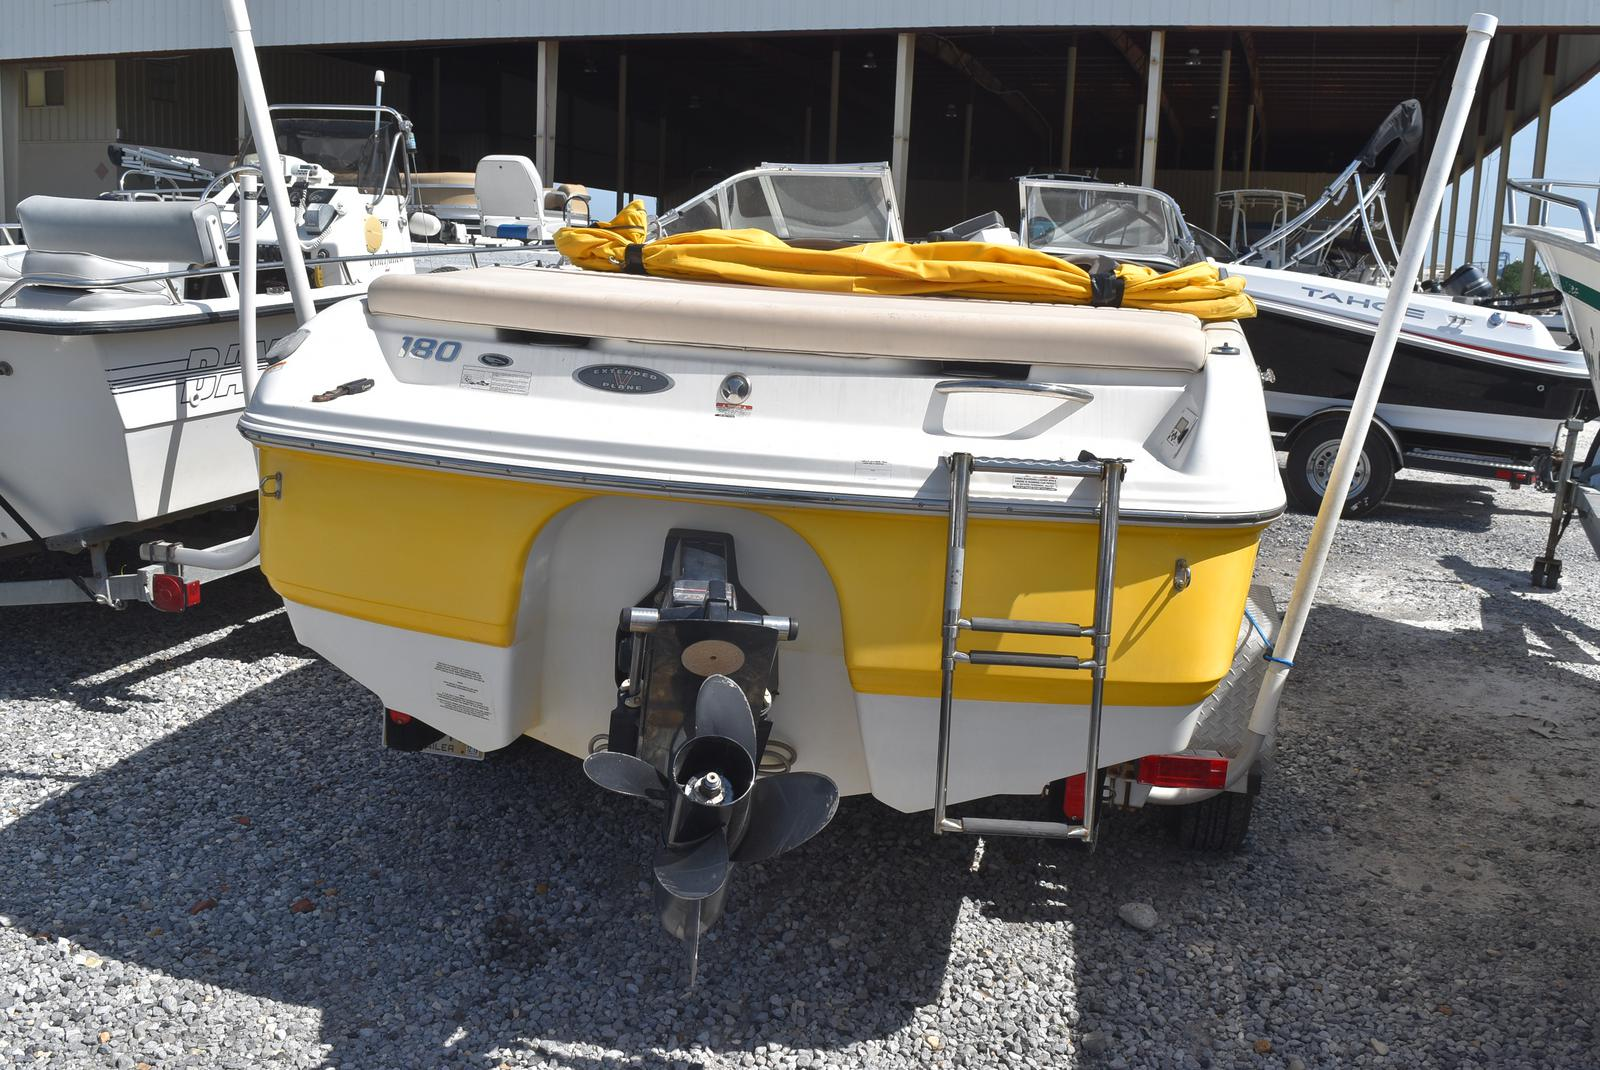 2008 Chaparral boat for sale, model of the boat is 180 SSi & Image # 2 of 2